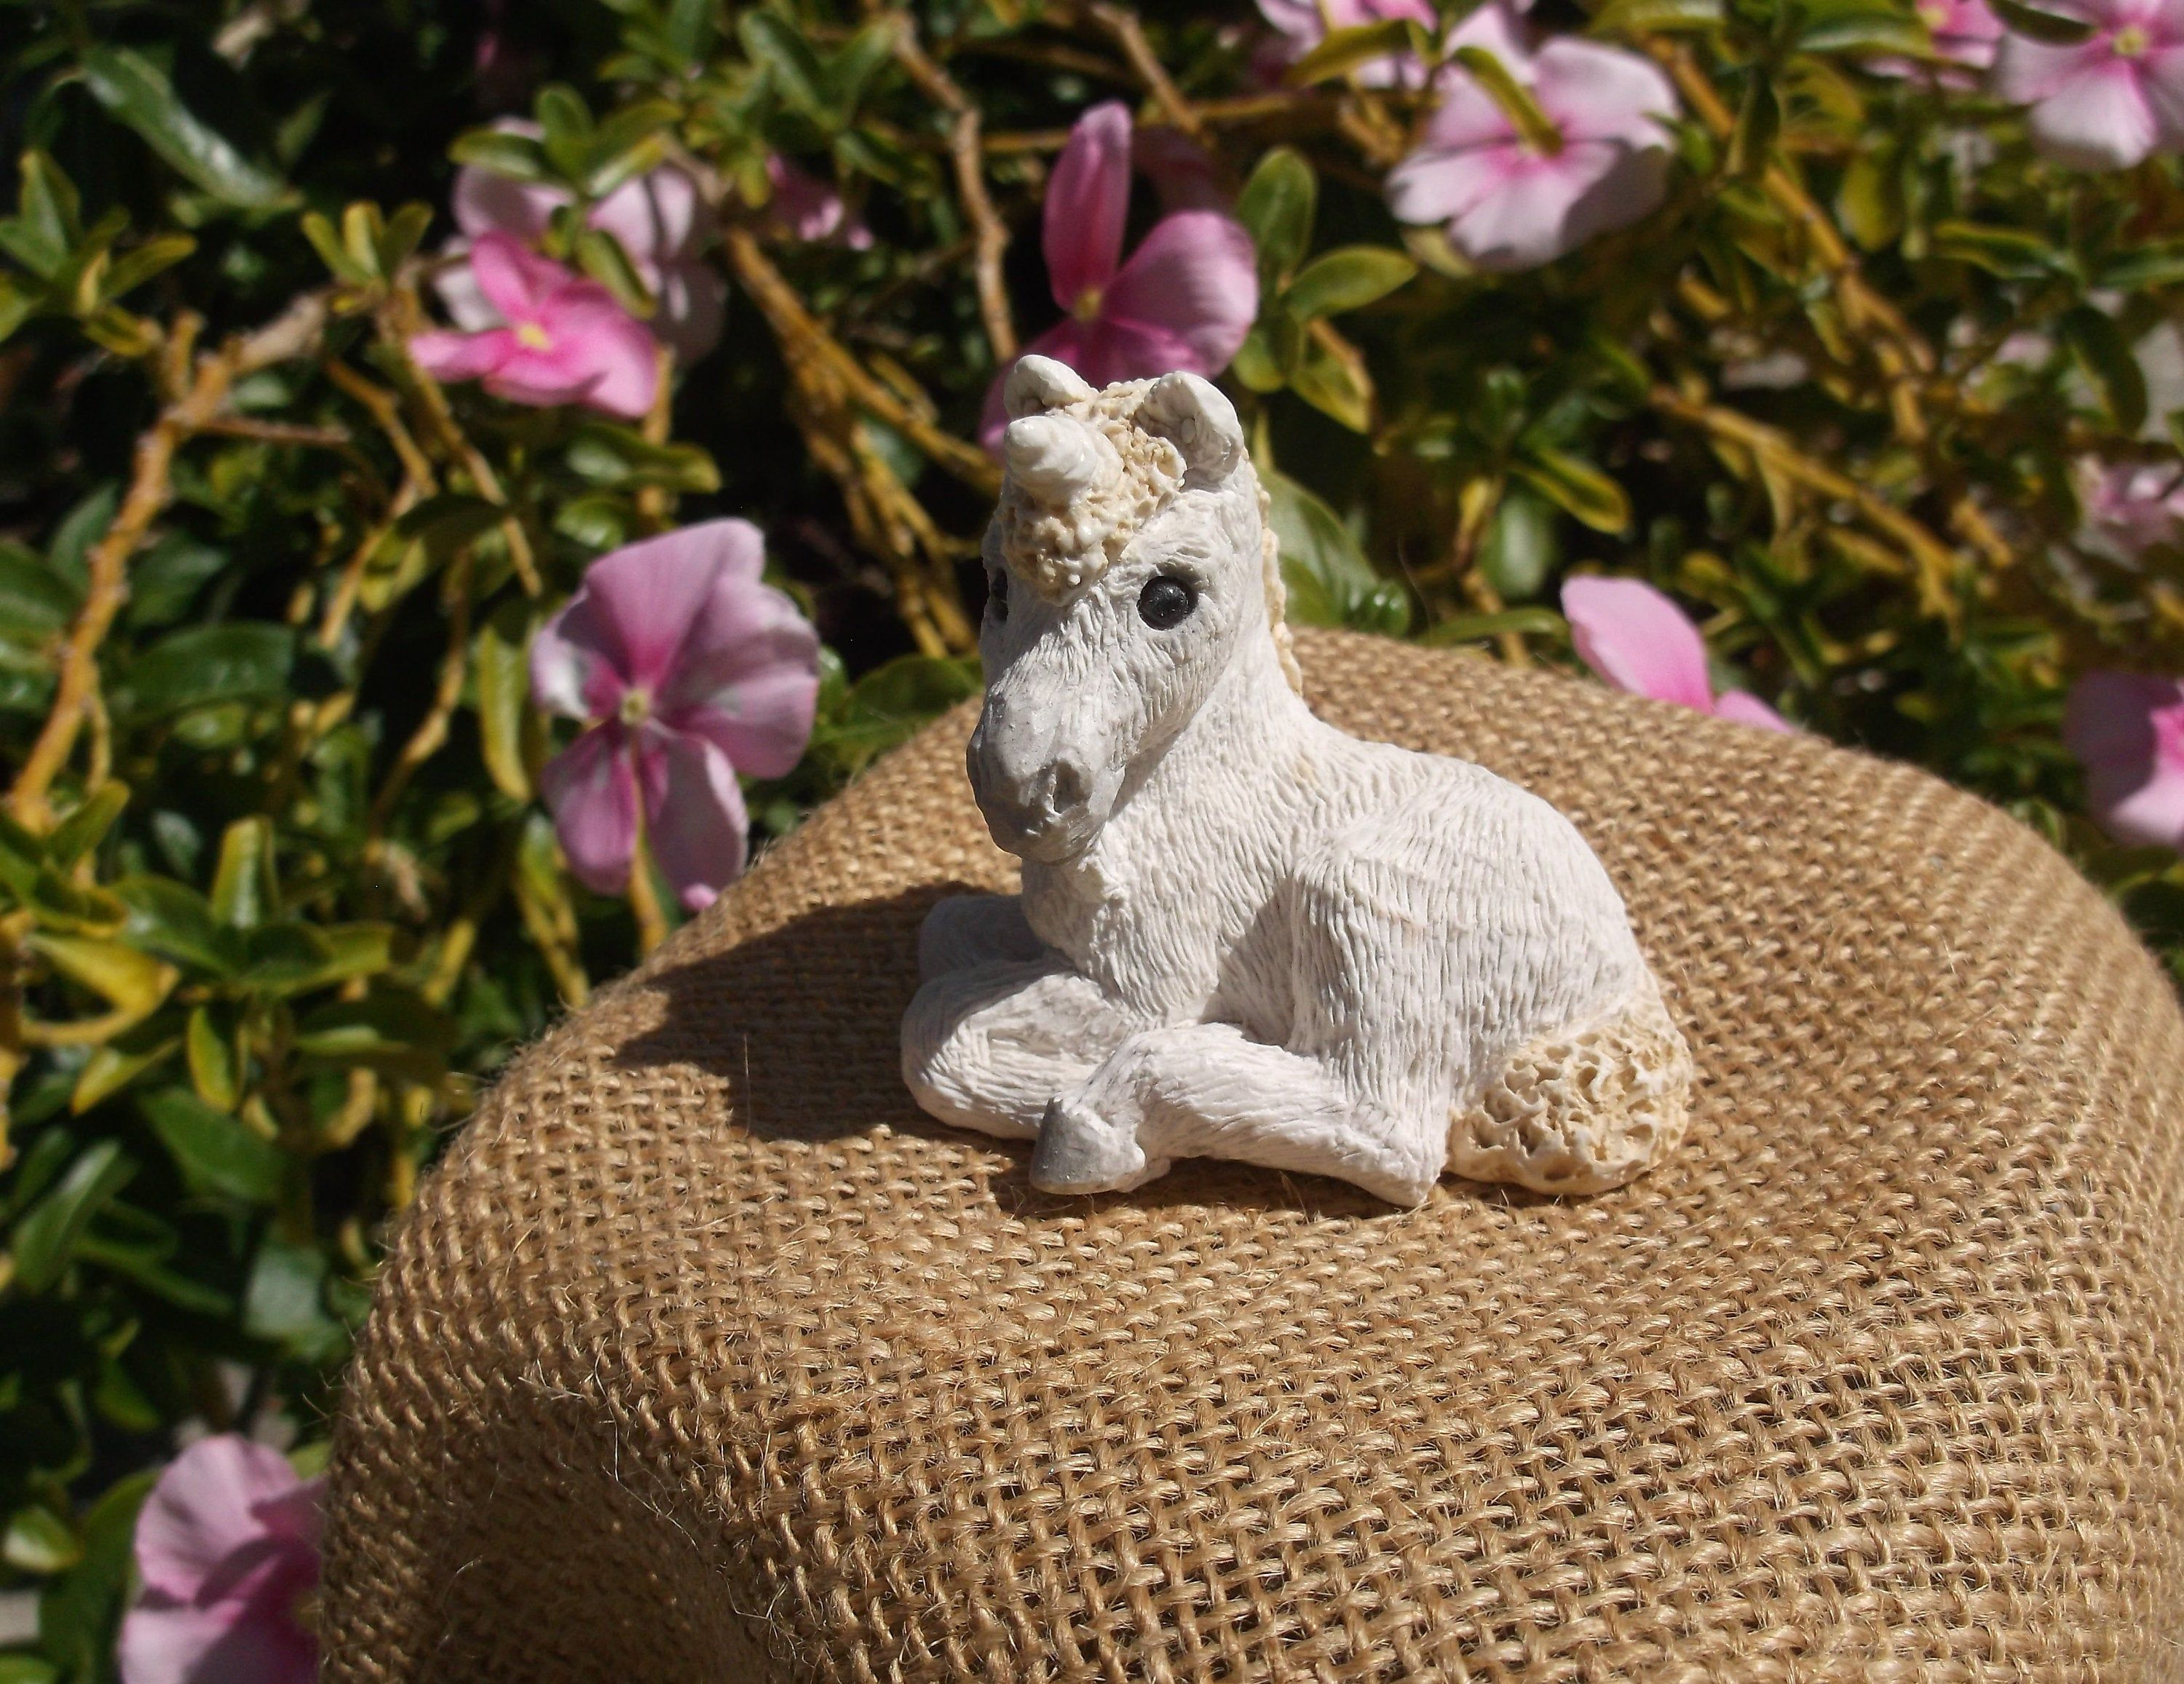 Vintage Stone Critter Littles Unicorn Figurine - Collectible Figurine Made in the USA #littleunicorn